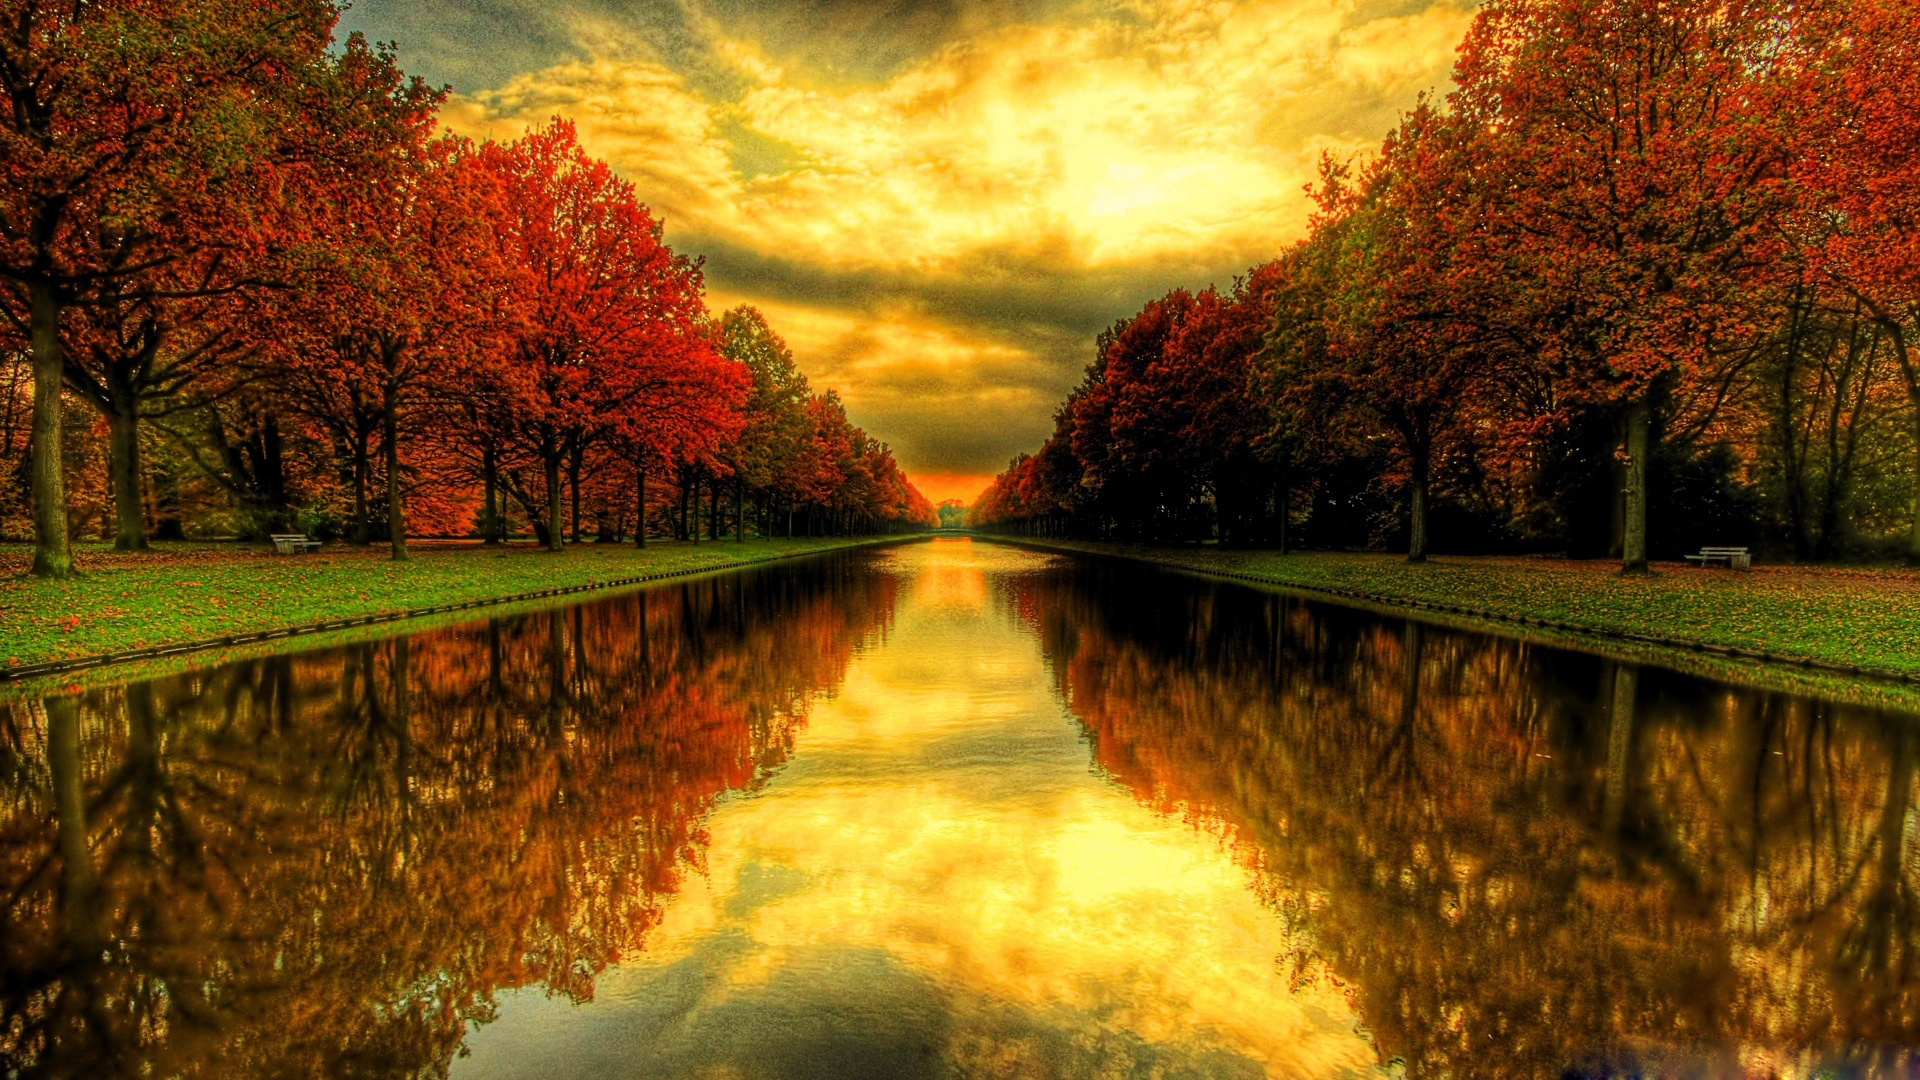 wallpaper wiki fall hd great computer backgrounds pic